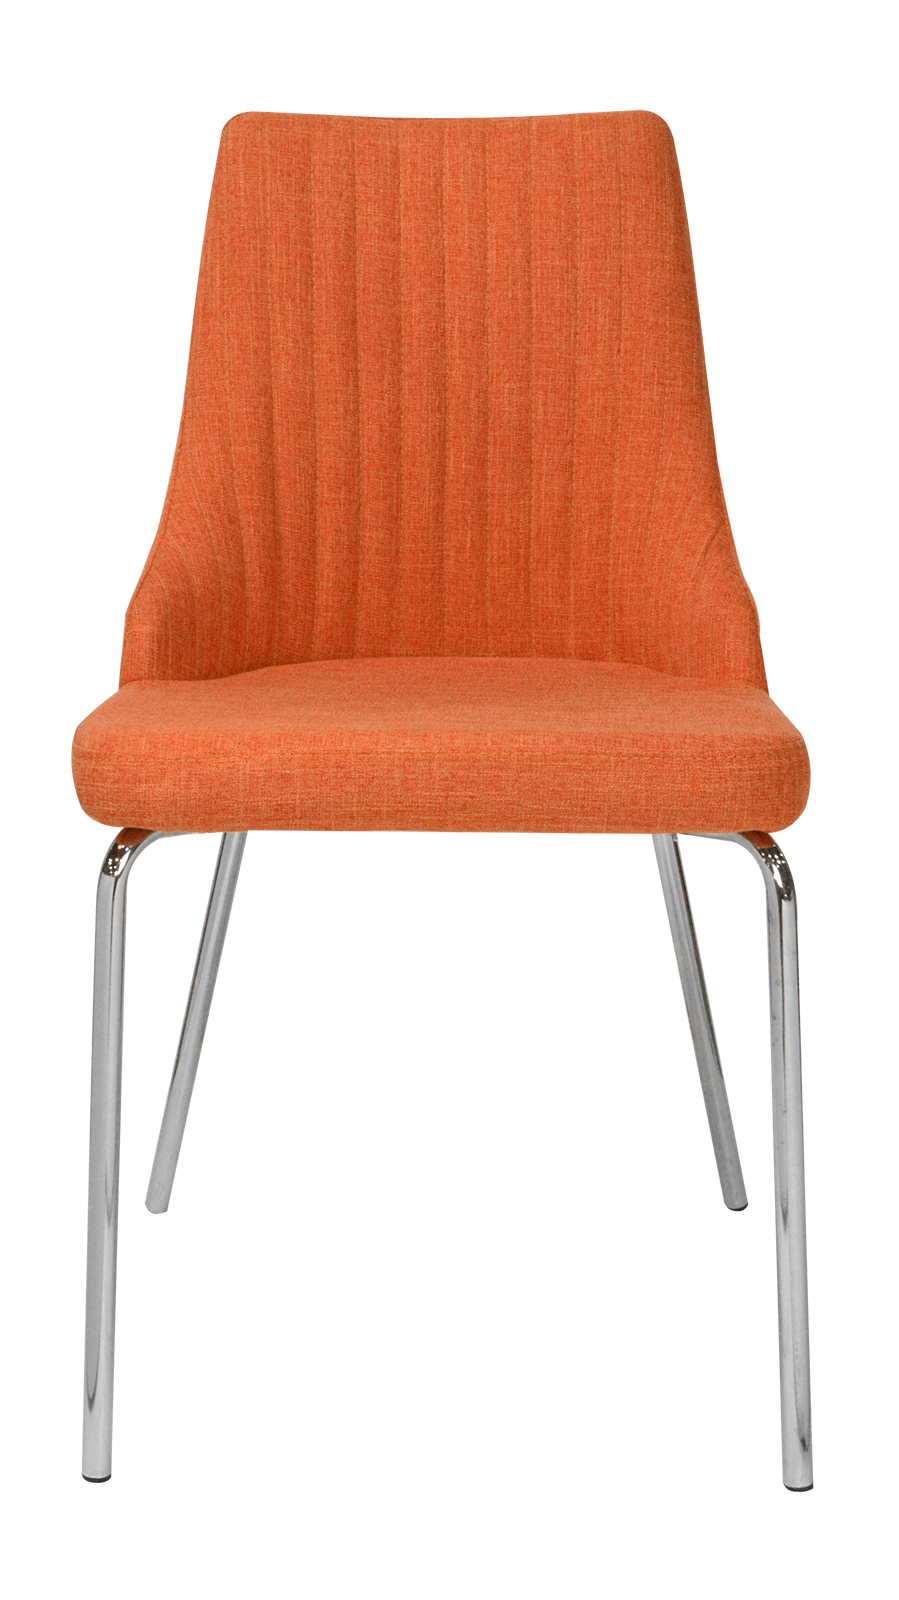 dining chair B 514 orange front.jpg